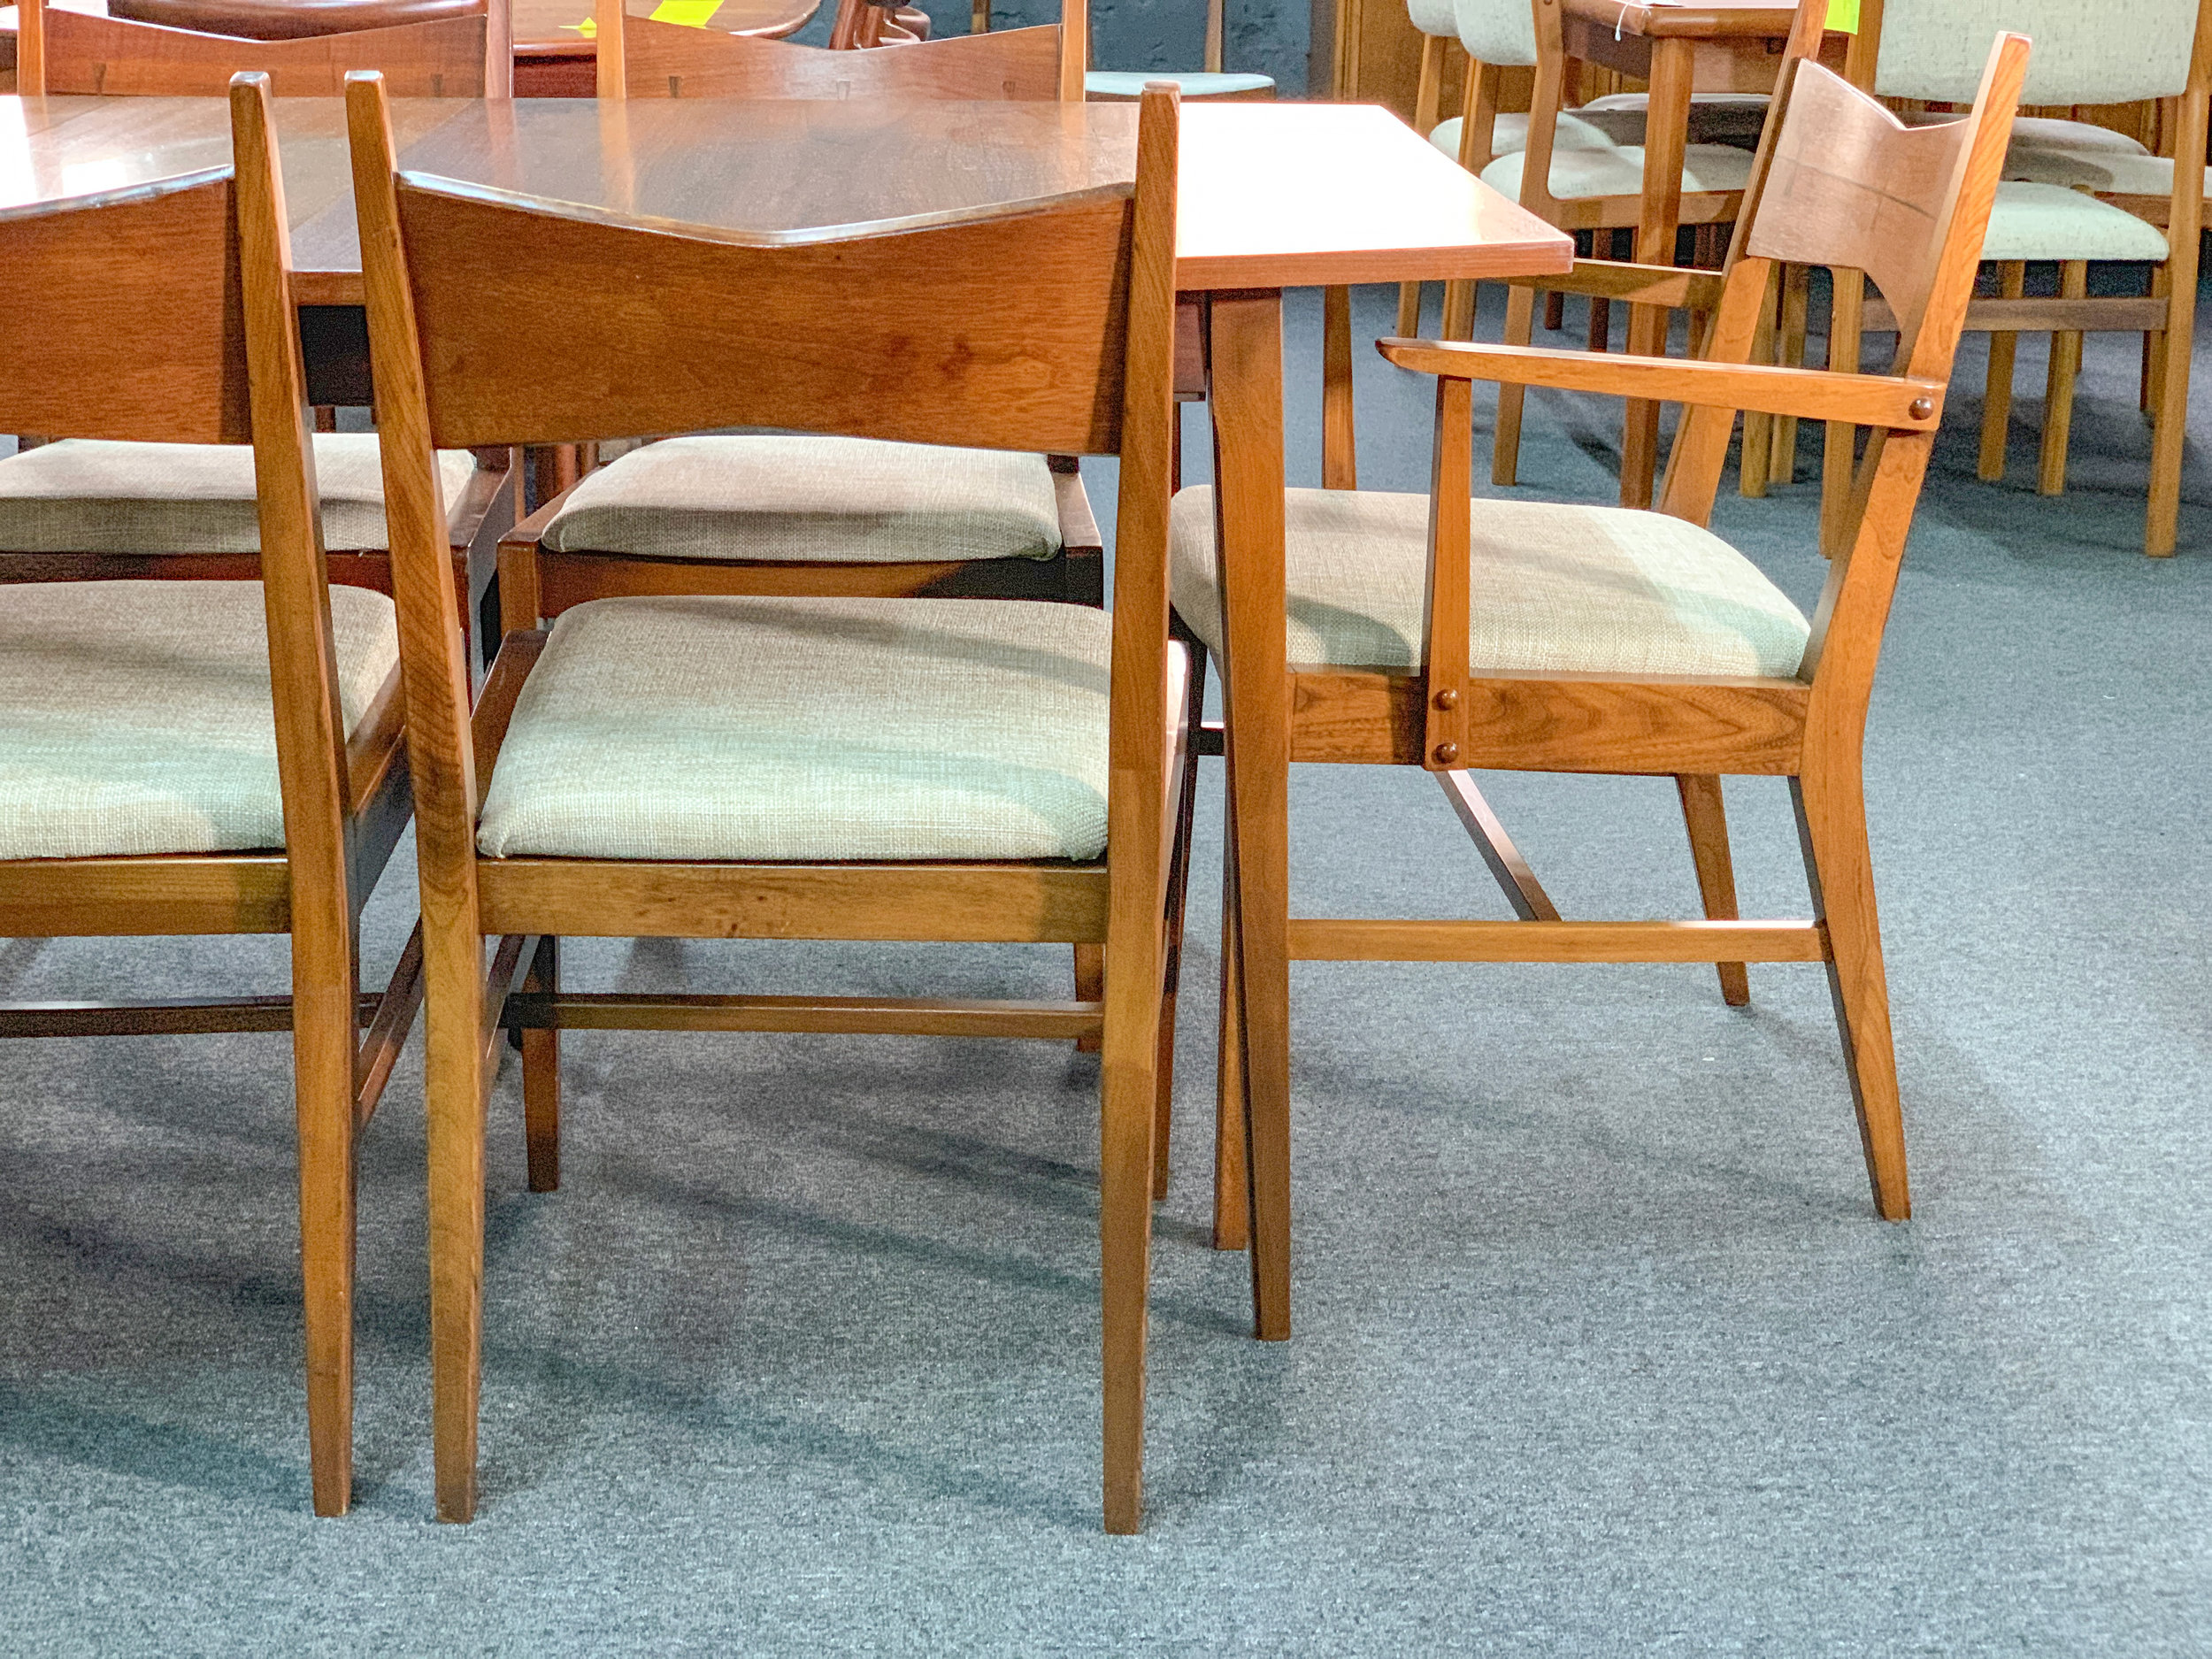 Dining Table 31 W X 3 Leaves 12 Each 42 D 29 H 1200 Set Of 10 Chairs 18 25 Seat 24 20 2500 2 Captain 8 Side